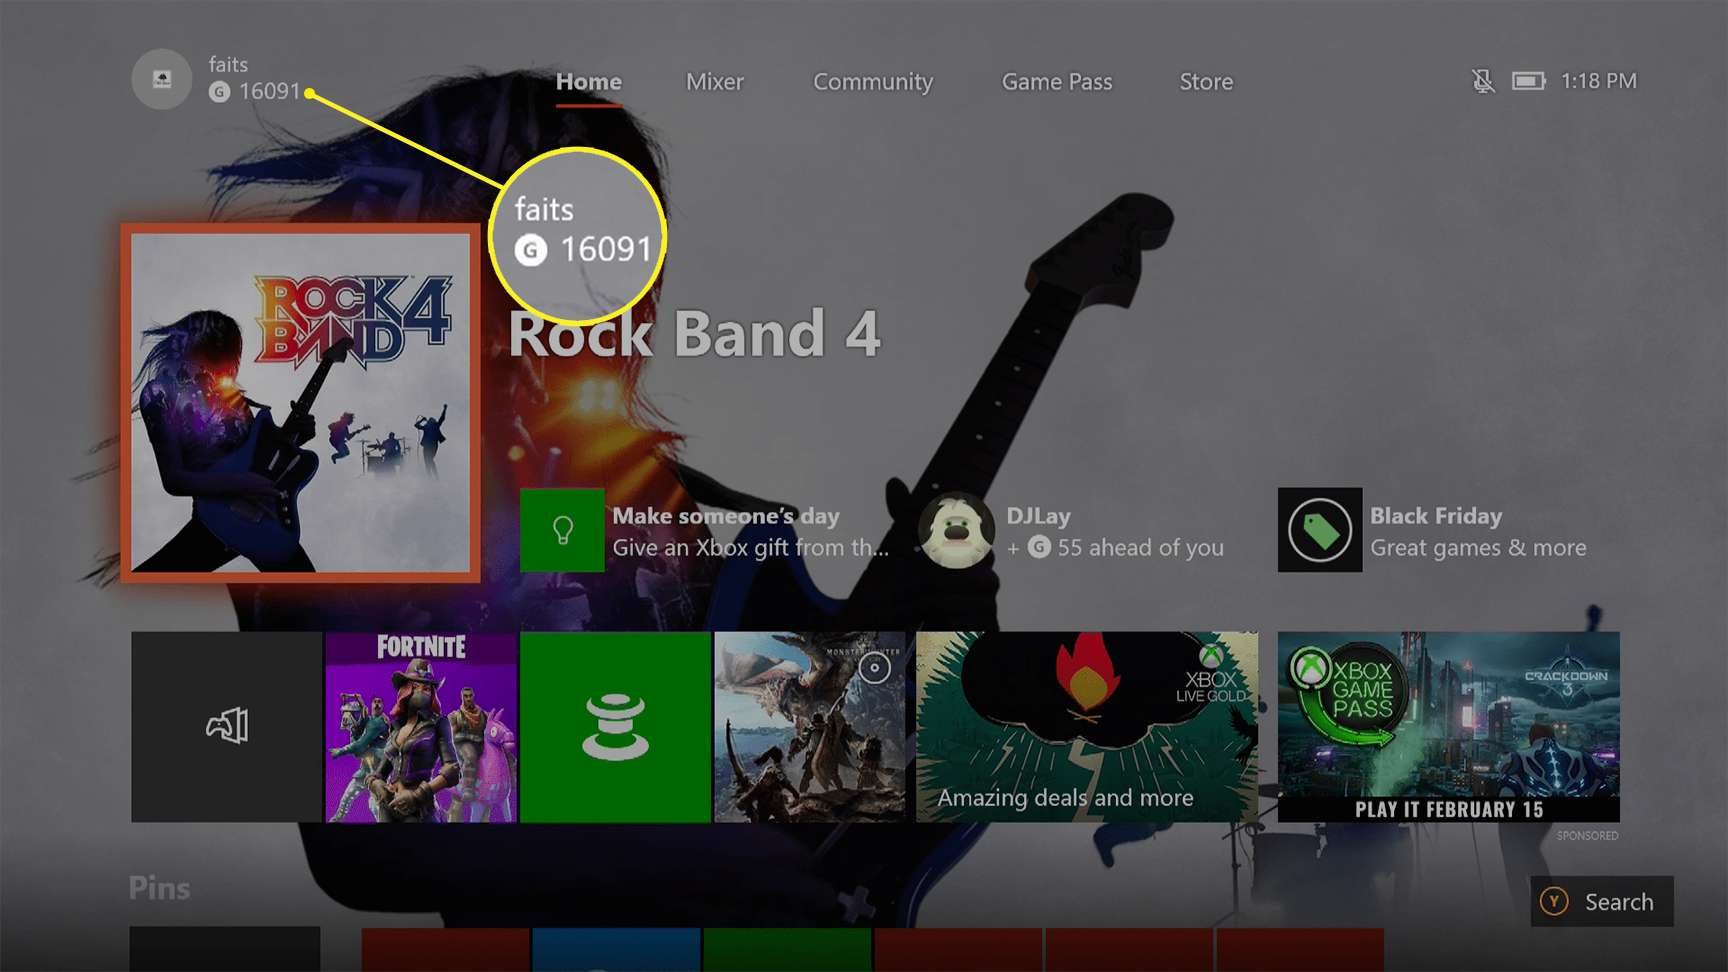 Xbox One showing a gamertag in the upper left corner